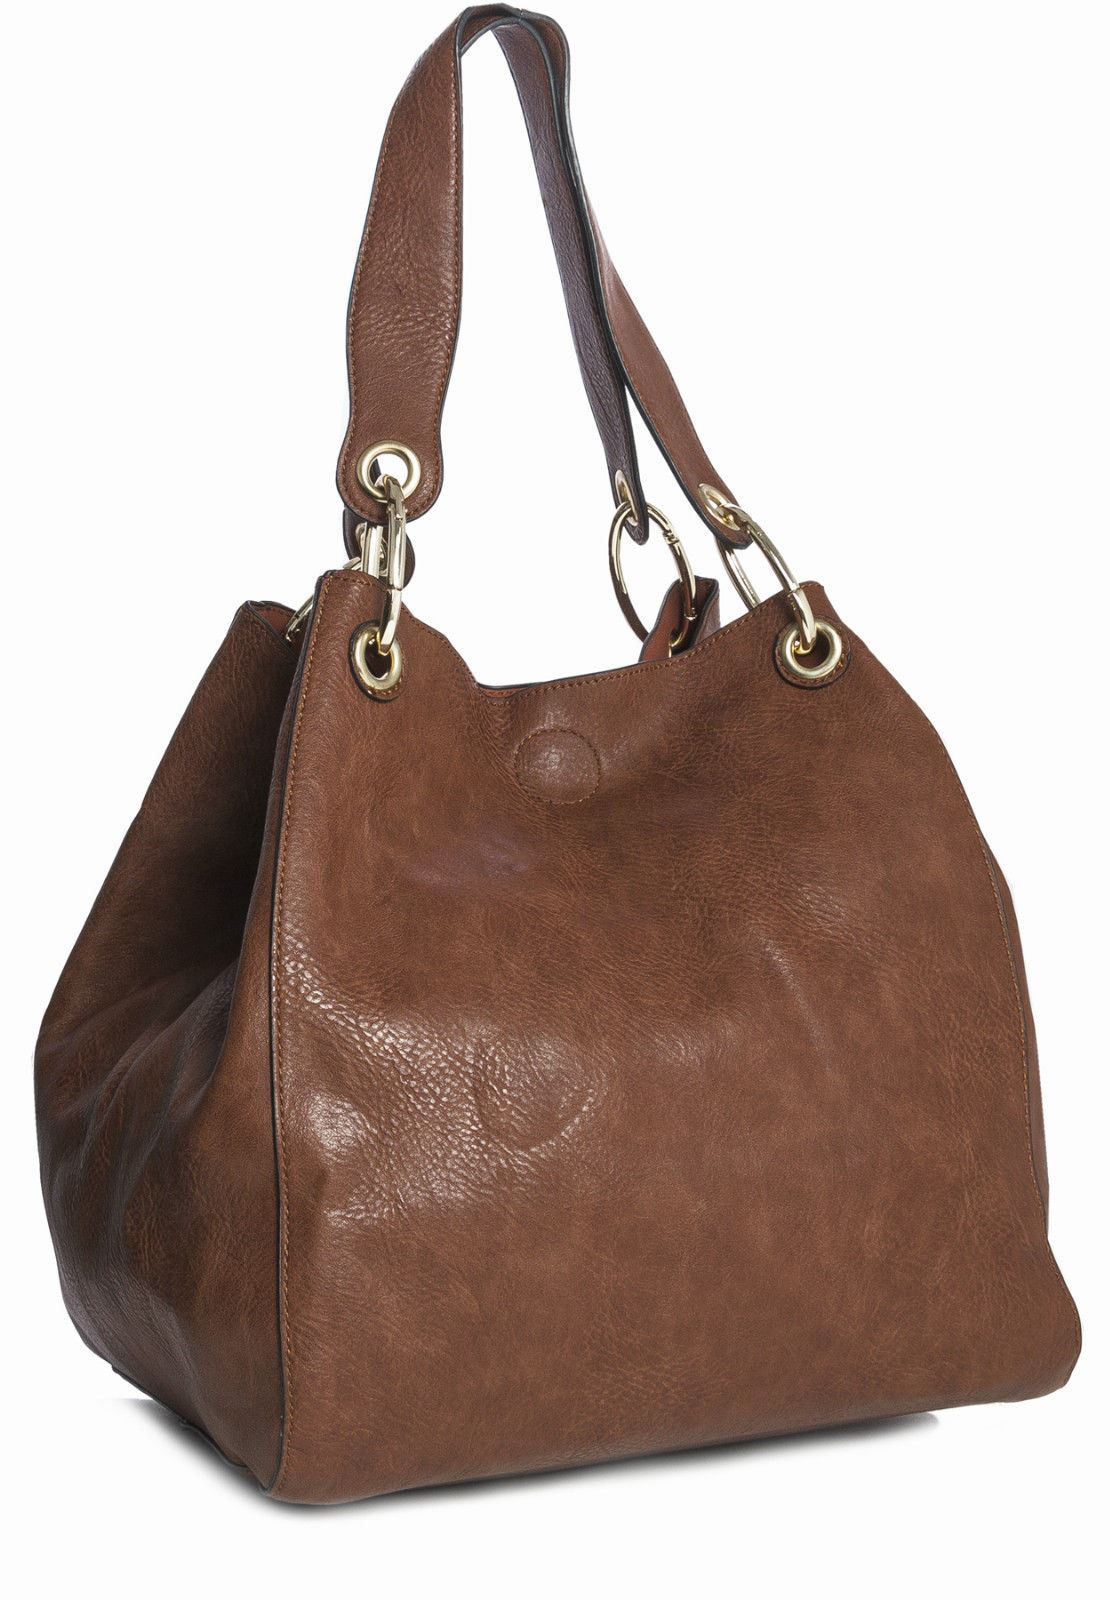 Overstock uses cookies to ensure you get the best experience on our site. If you continue on our site, you consent to the use of such cookies. Learn more. OK Tote Bags. Clothing & Shoes / Casual Women Crocodile Shoulder Bags Big Tote Bags Large Capacity Handbag.